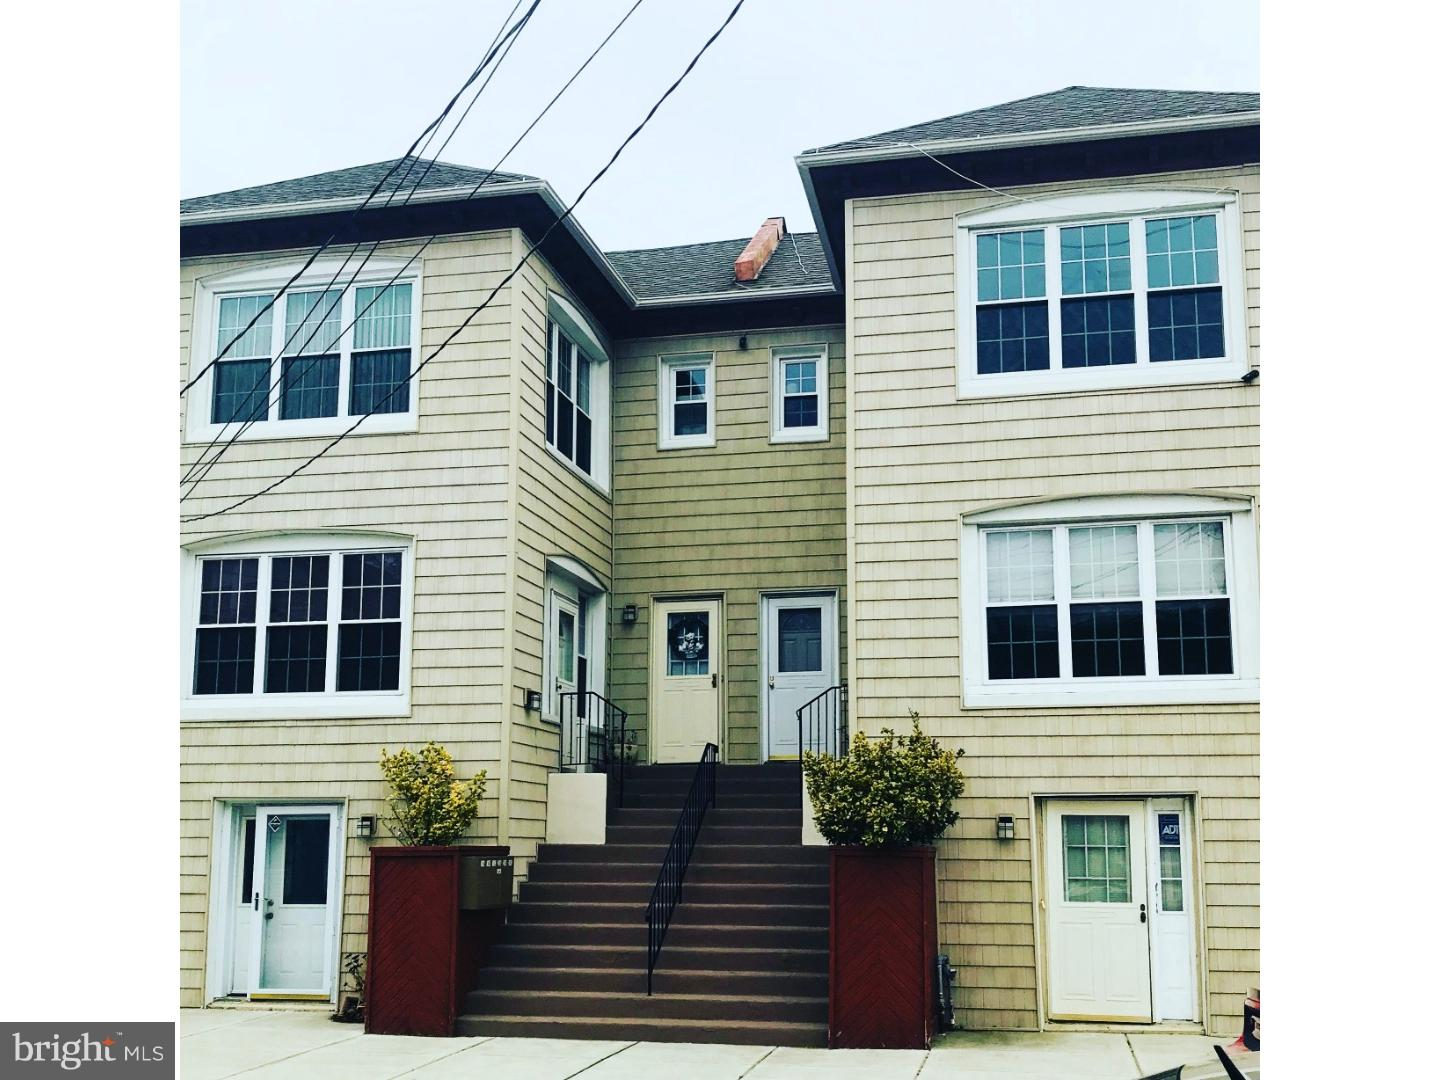 20 N NEWPORT AVENUE B, VENTNOR CITY, NJ 08406